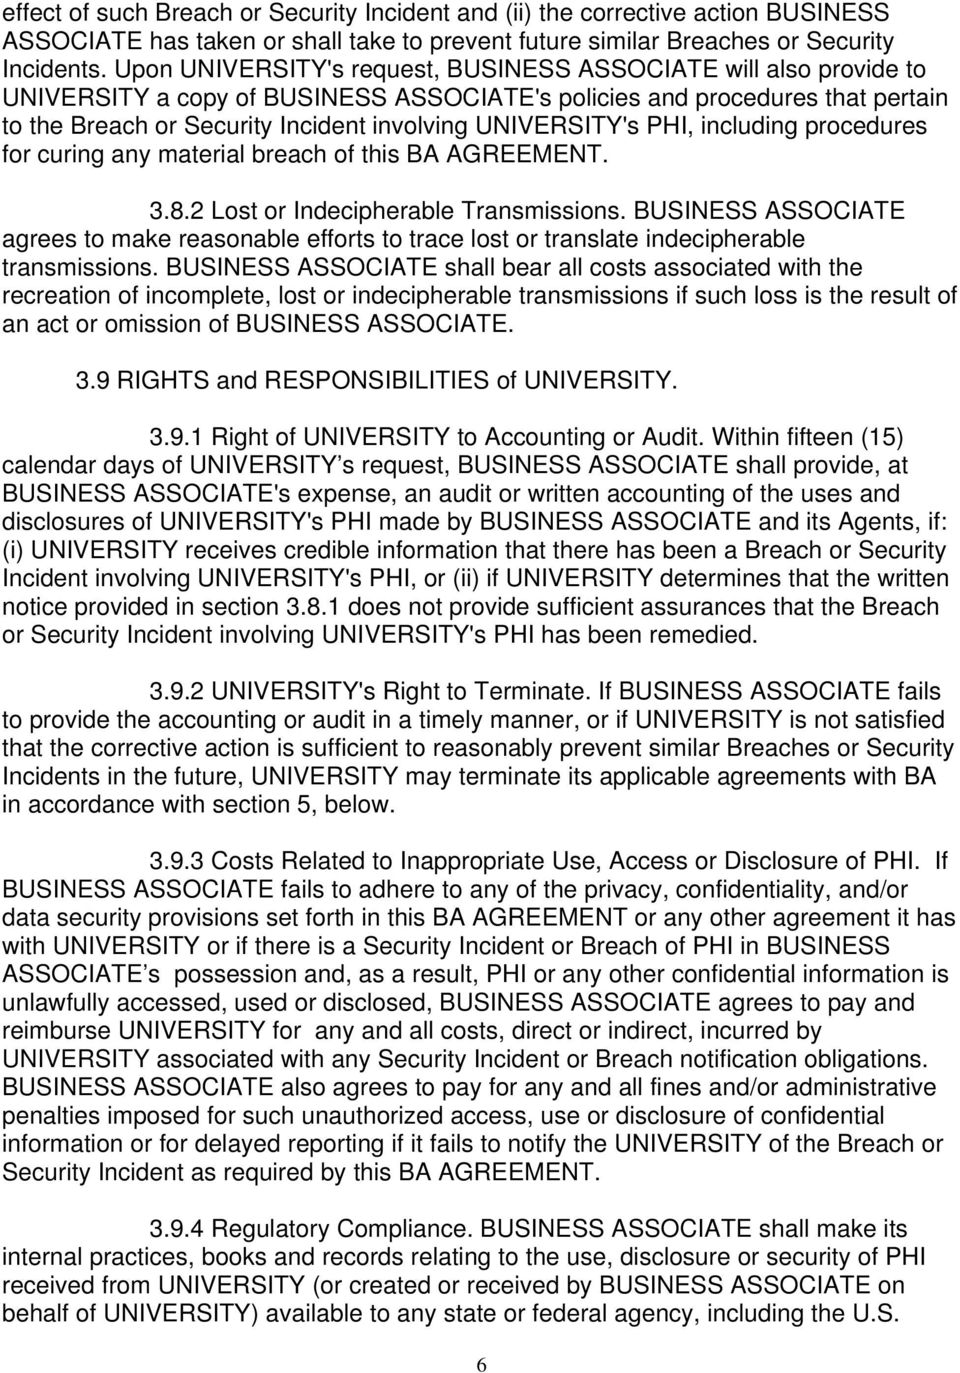 UNIVERSITY's PHI, including procedures for curing any material breach of this BA AGREEMENT. 3.8.2 Lost or Indecipherable Transmissions.